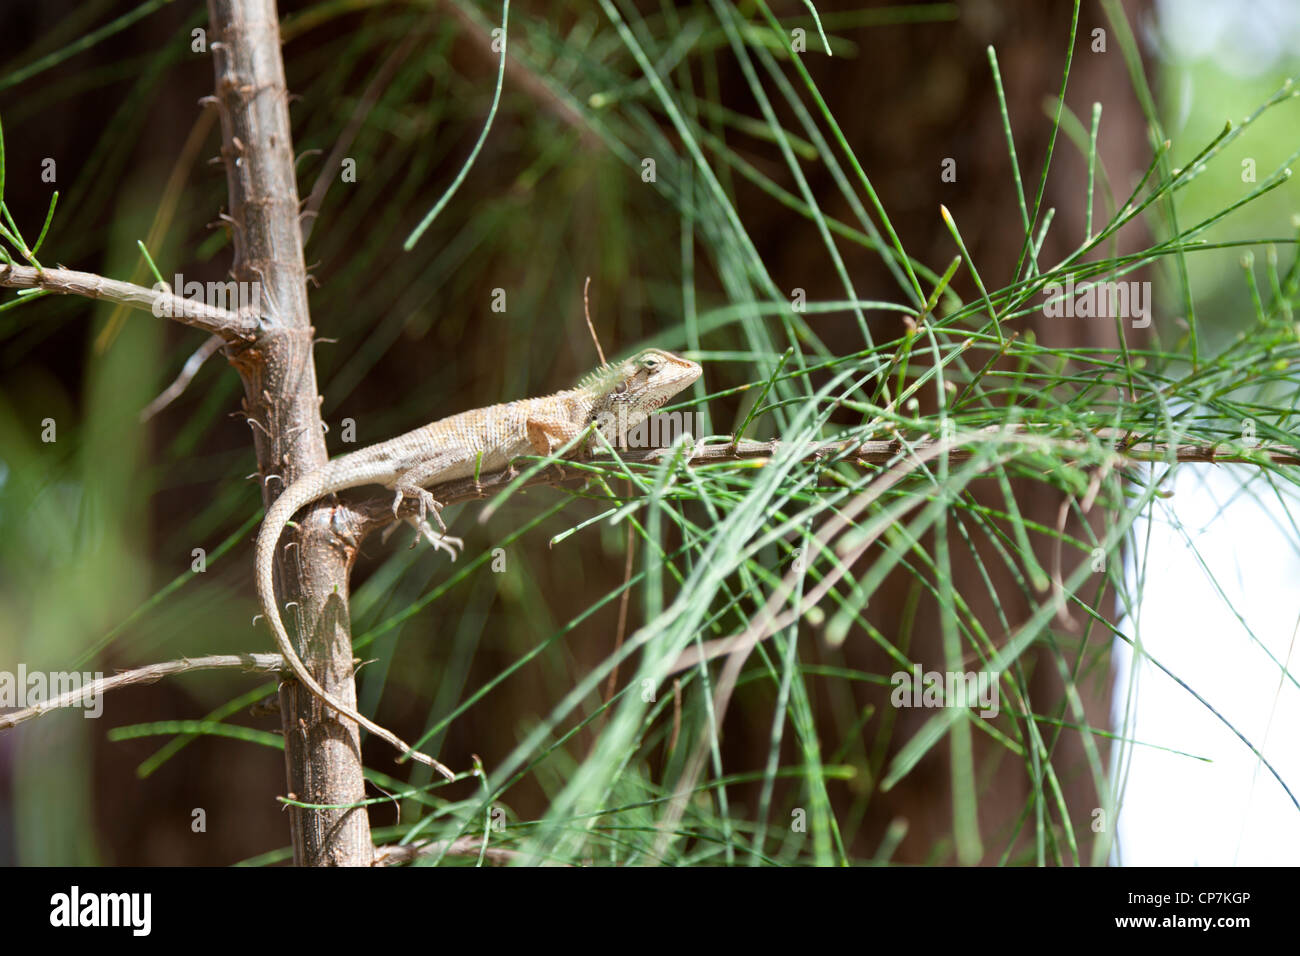 A small specimen of the Garden Fence Lizard (Calotes versicolor) on the watch. Petit lézard du genre Agama aux aguets. Stock Photo